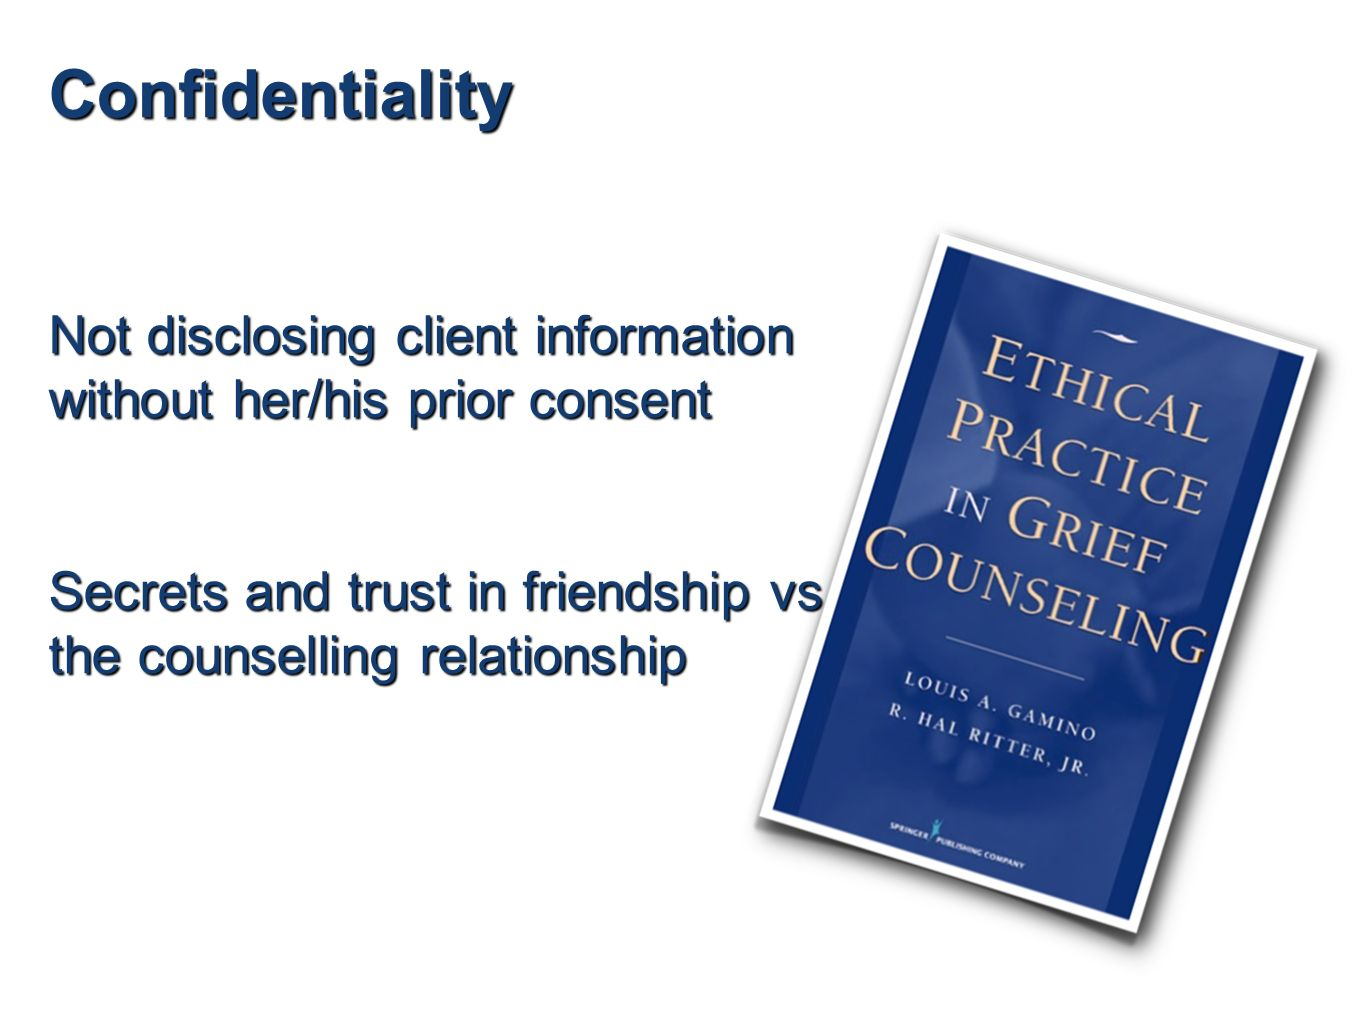 client confidentiality and ethics in the